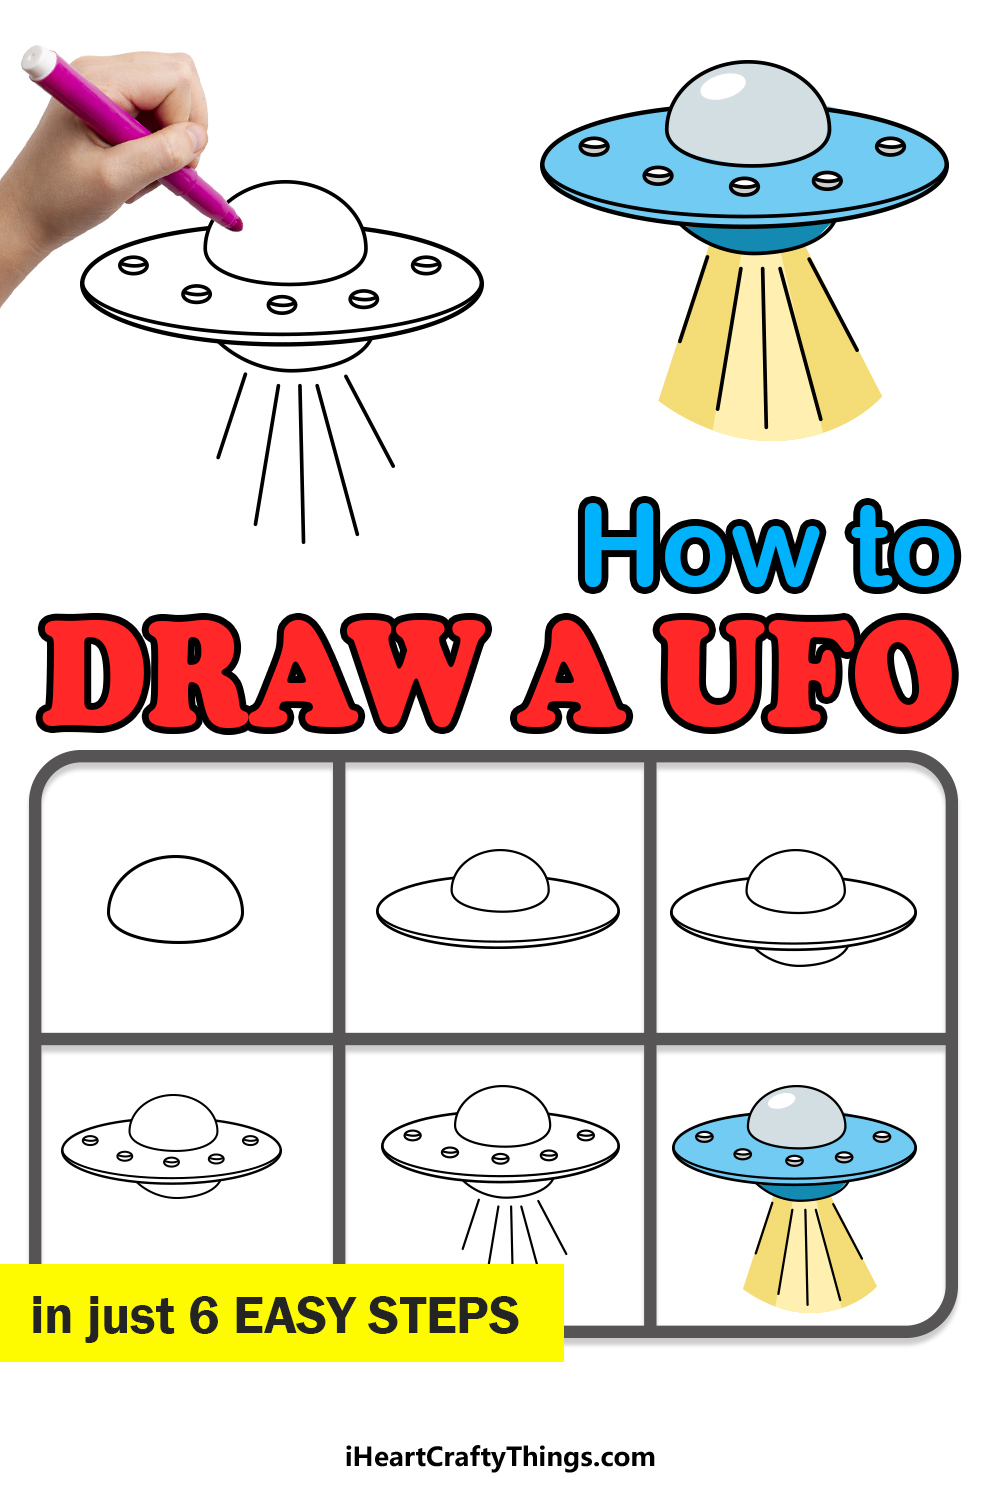 how to draw a UFO in 6 easy steps